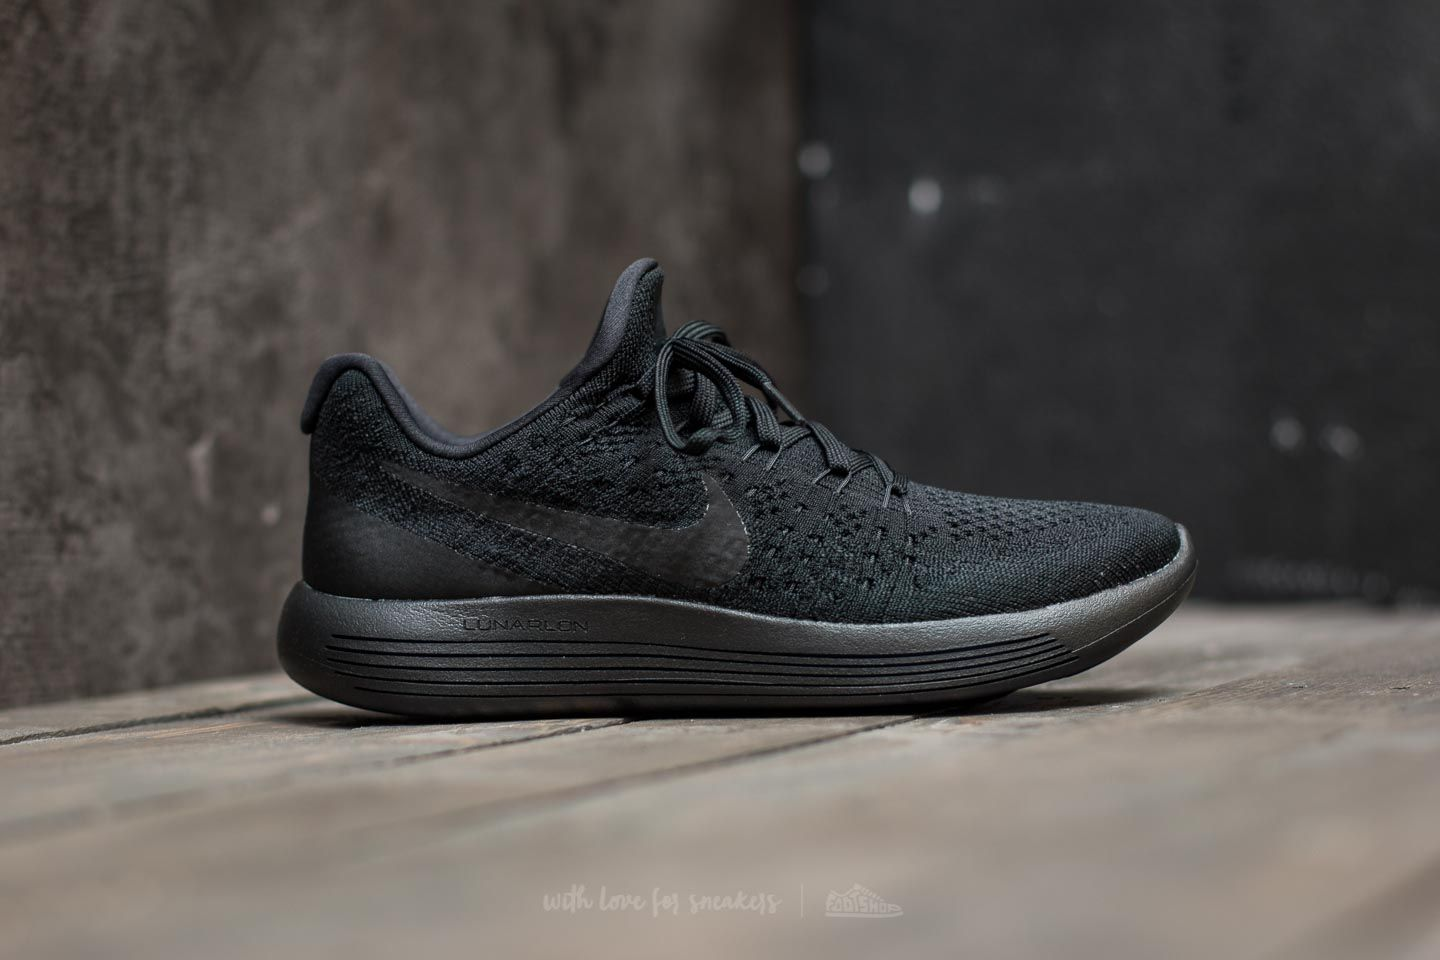 innovative design 86a7b 97c2c Nike W Lunarepic Low Flyknit 2 Black  Black-Racer Blue at a great price